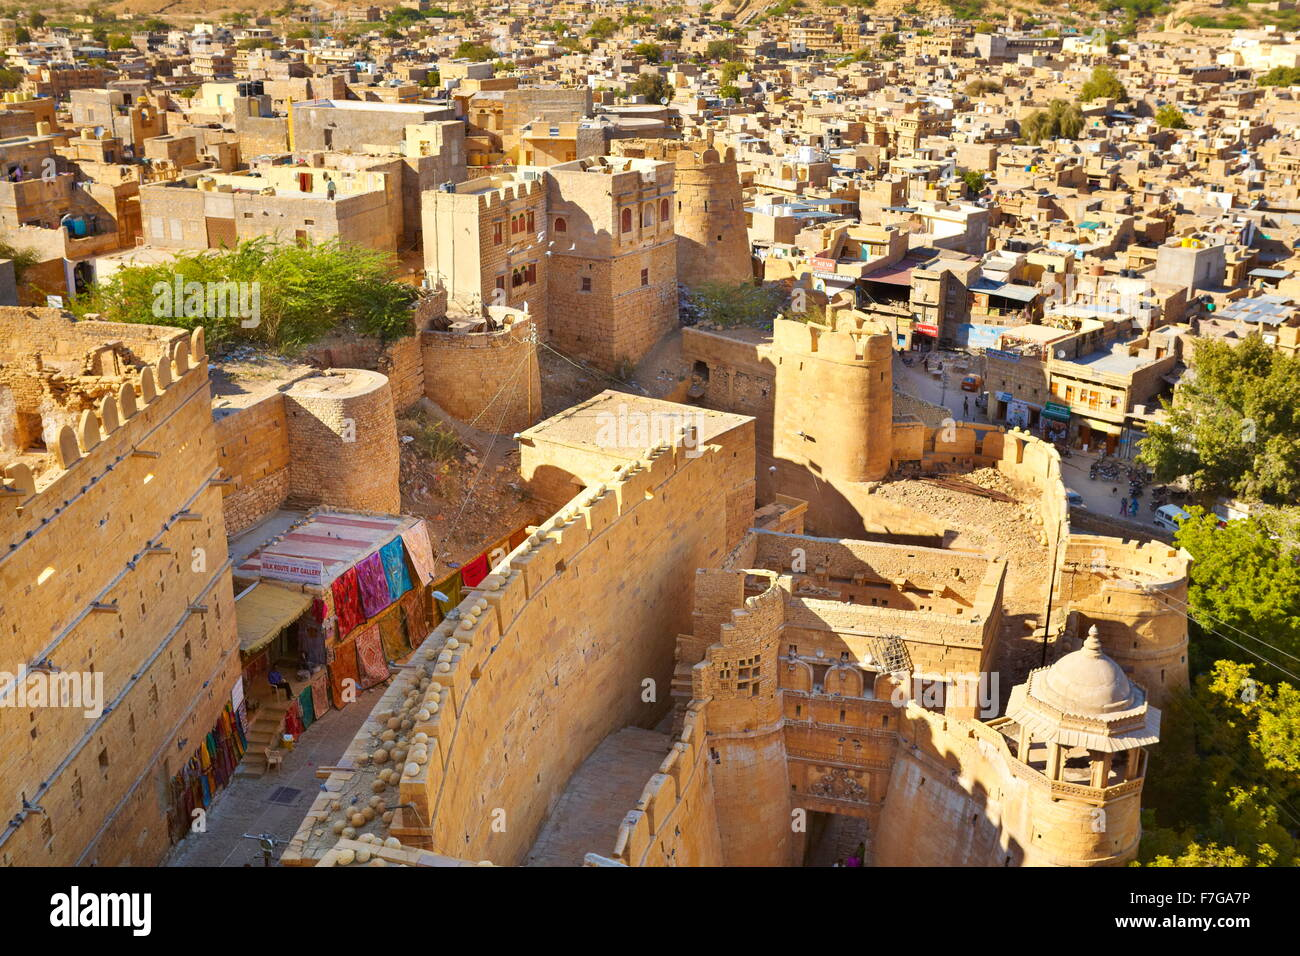 Aerial view from the top of Jaisalmer Fort of the foritication and city below, Jaisalmer, India - Stock Image